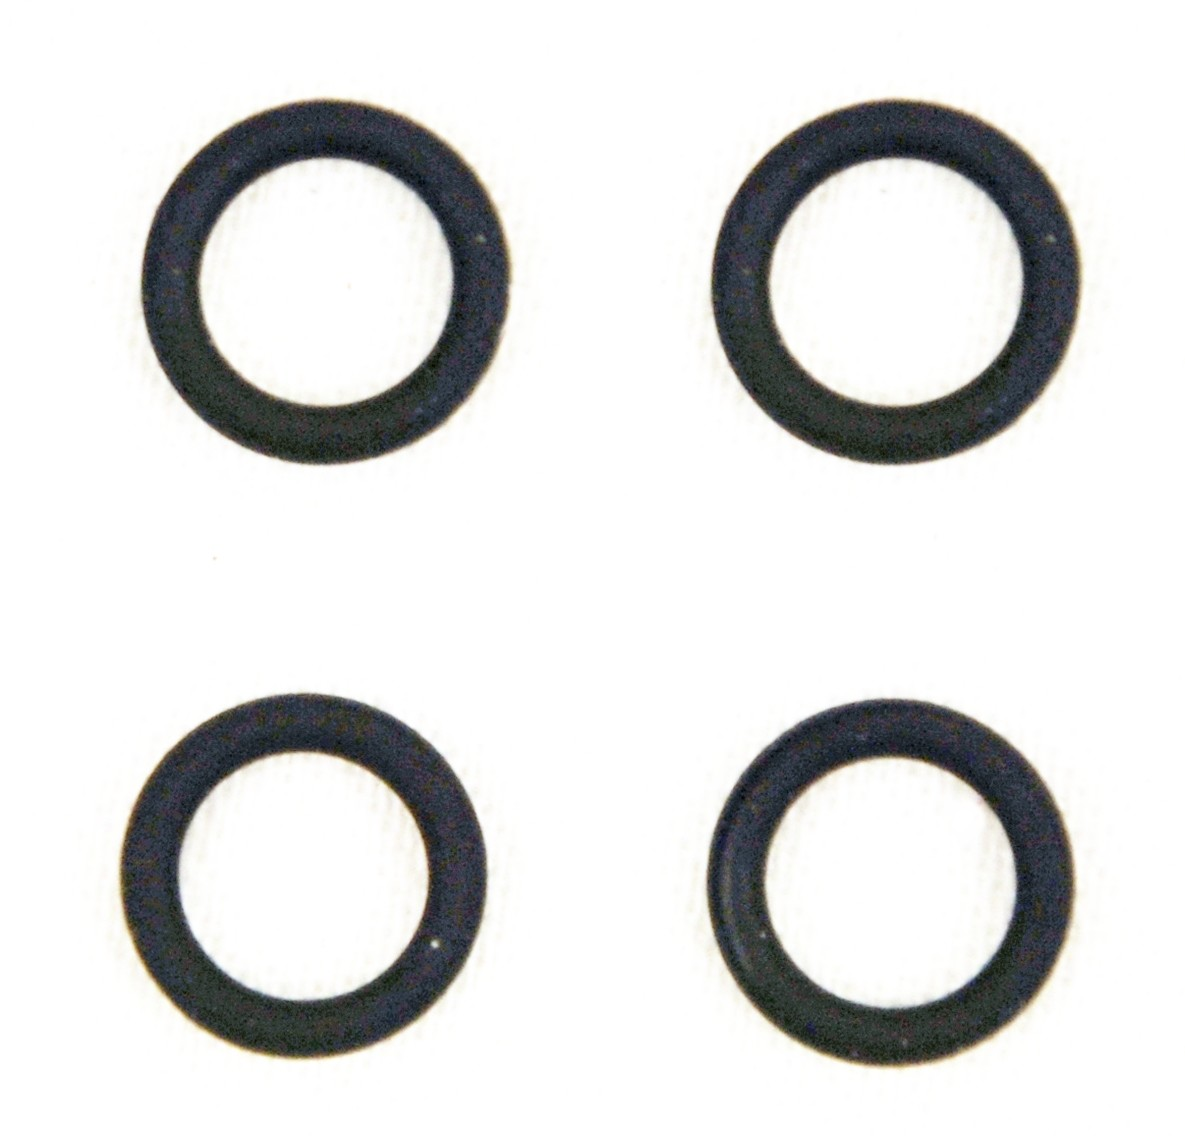 MAGNUM GASKETS - Magnum Fuel Injector O-Ring Set - MNG XS70001